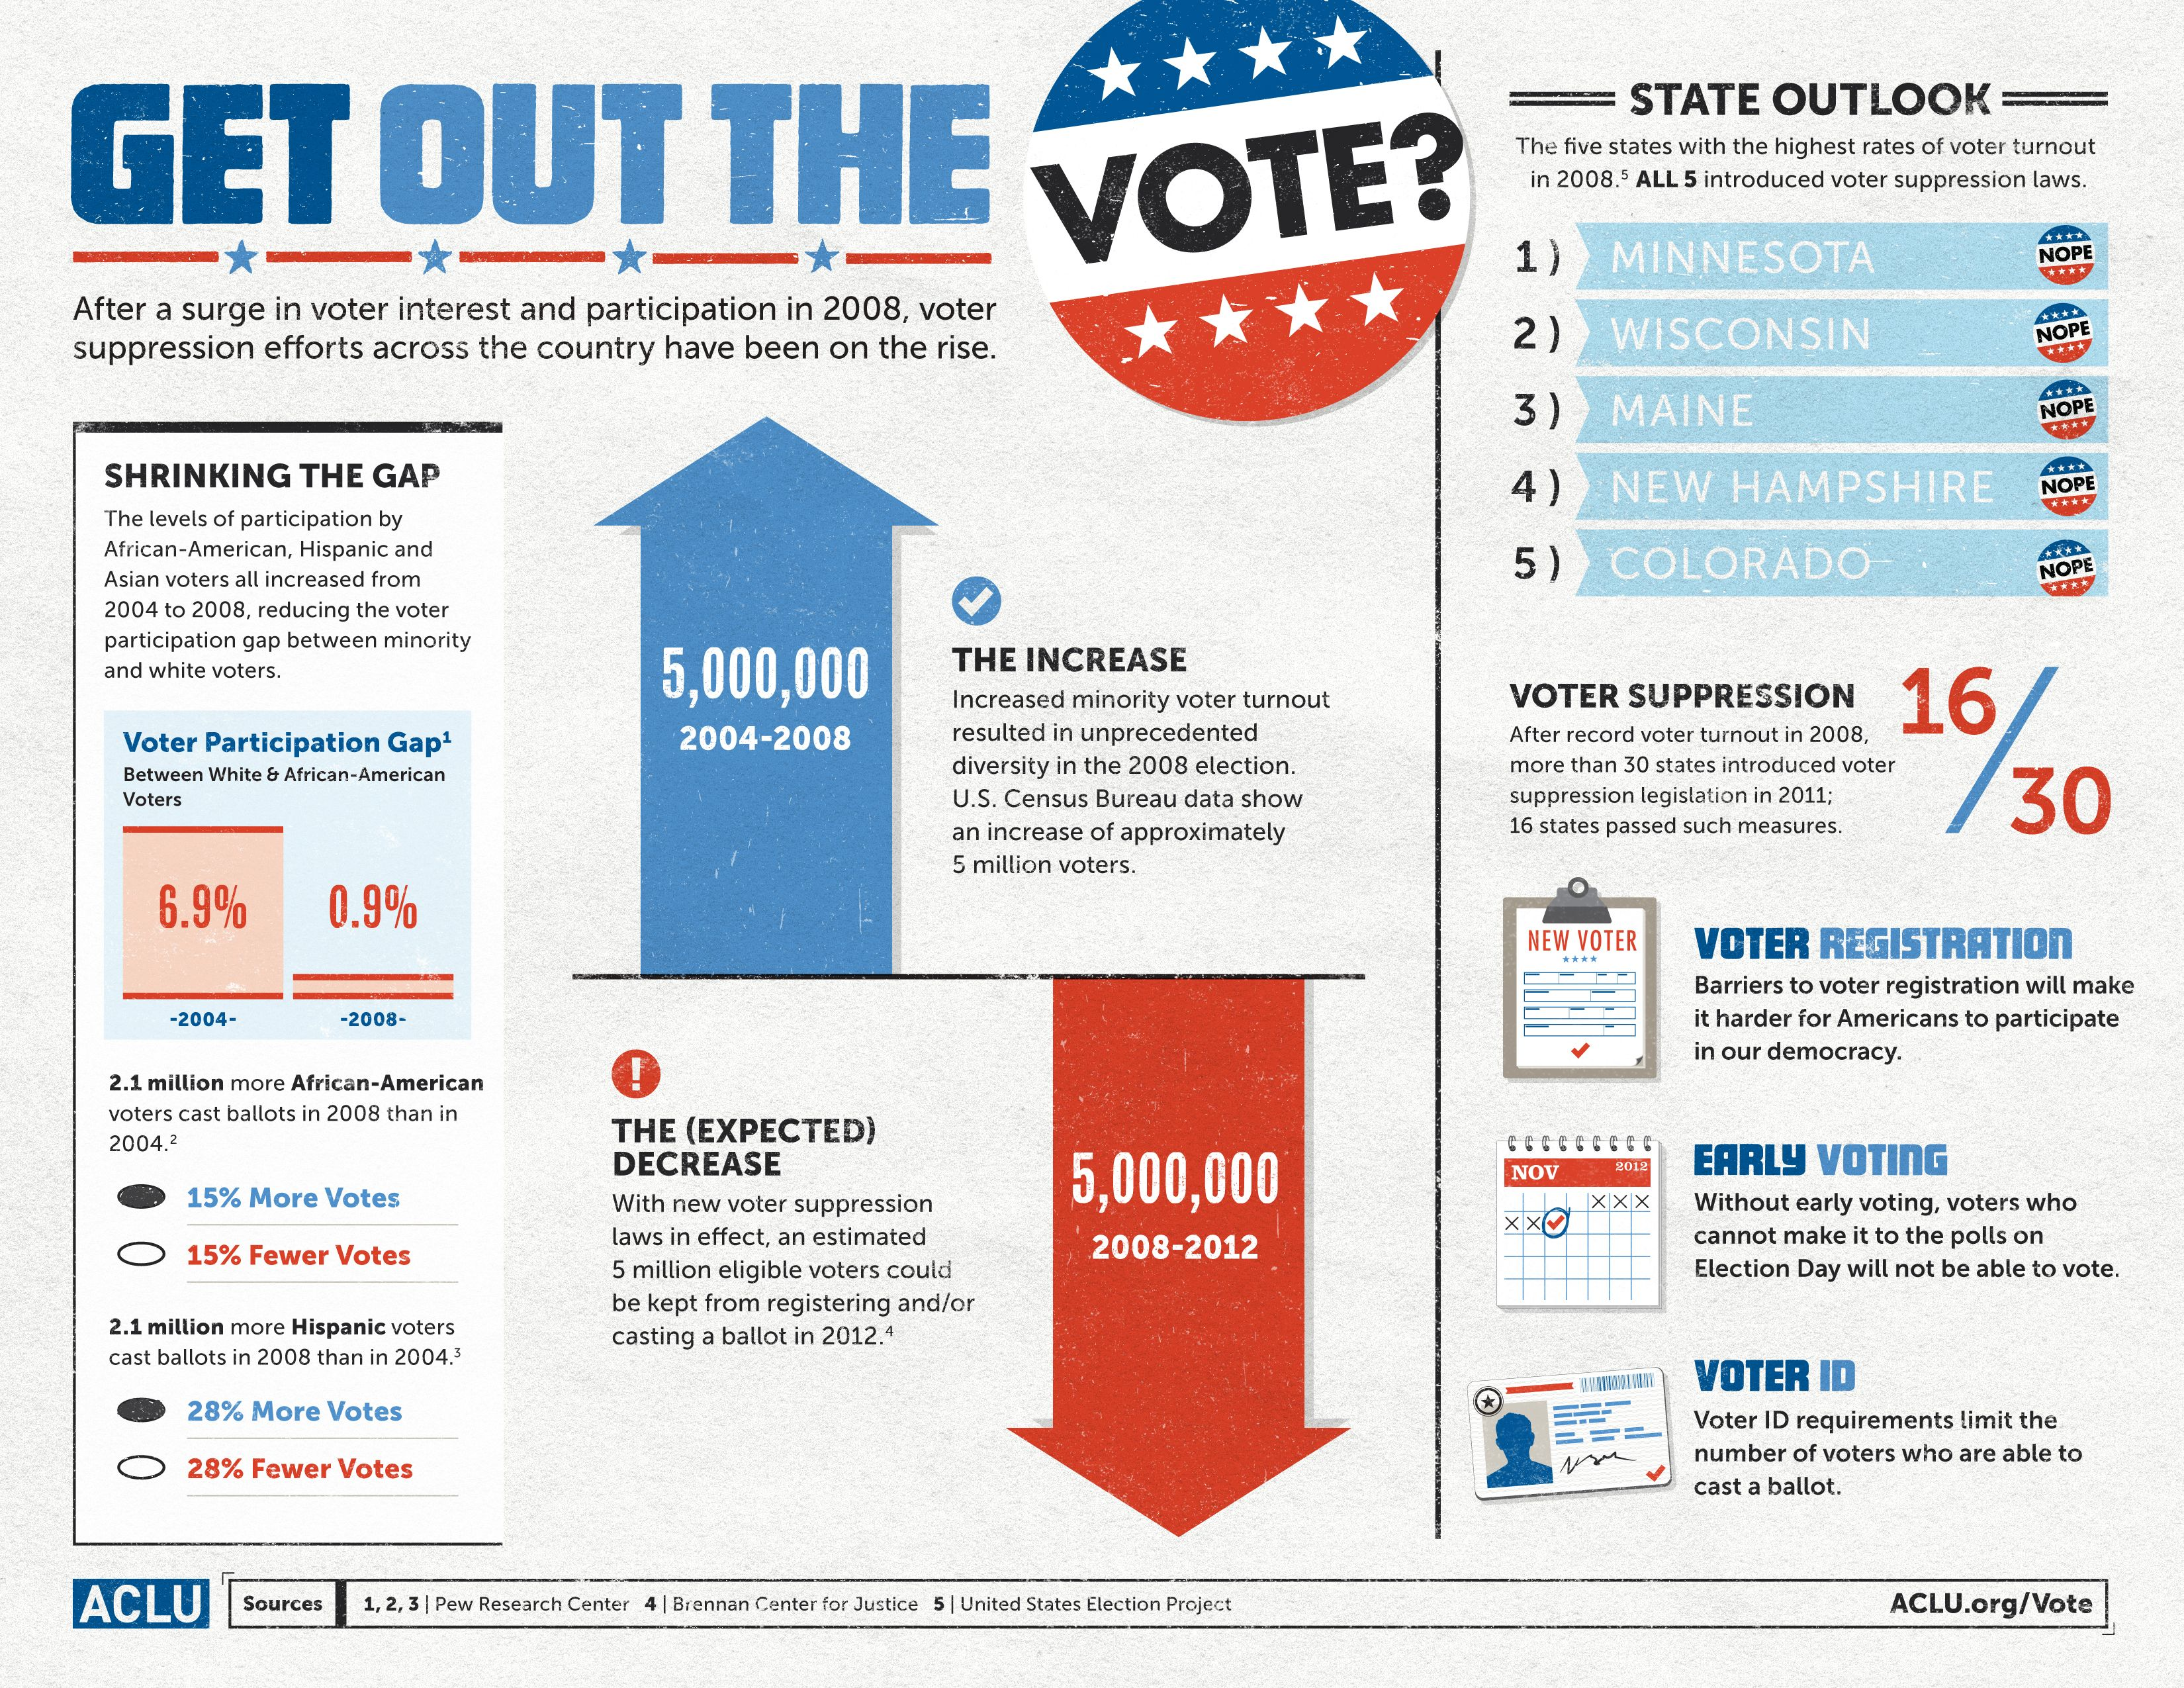 Get Out The Vote All Five States With The Highest Voter Turnout In 2008 Have Introduced Voter Suppression Laws Voter Get Out The Vote Vote